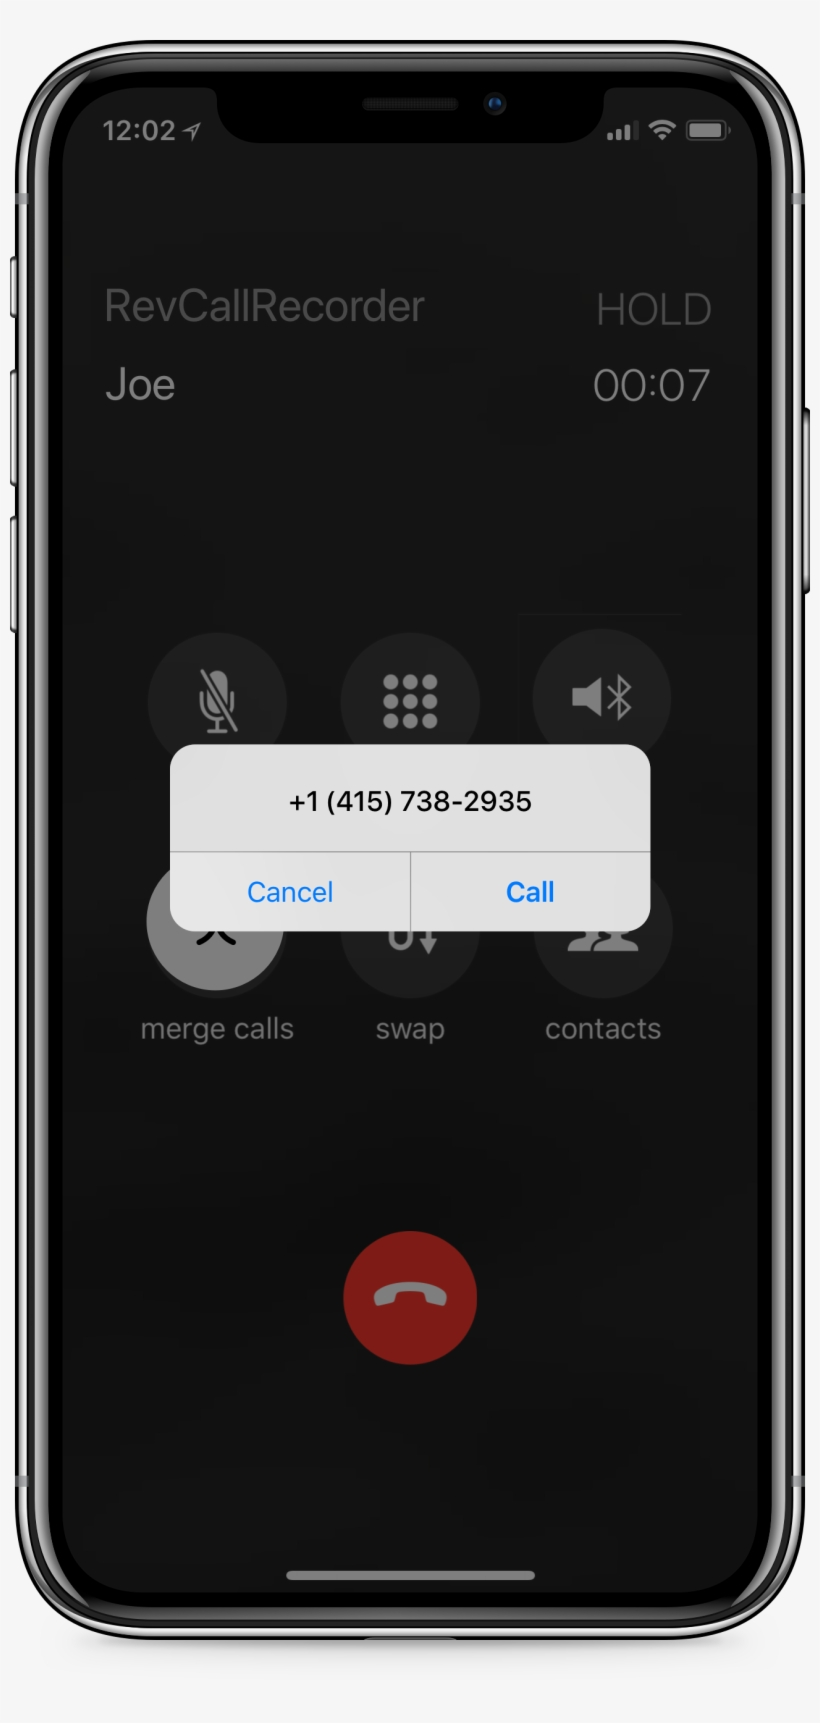 Iphone Using Rev Call Recorder App To Record A Call - Rev com